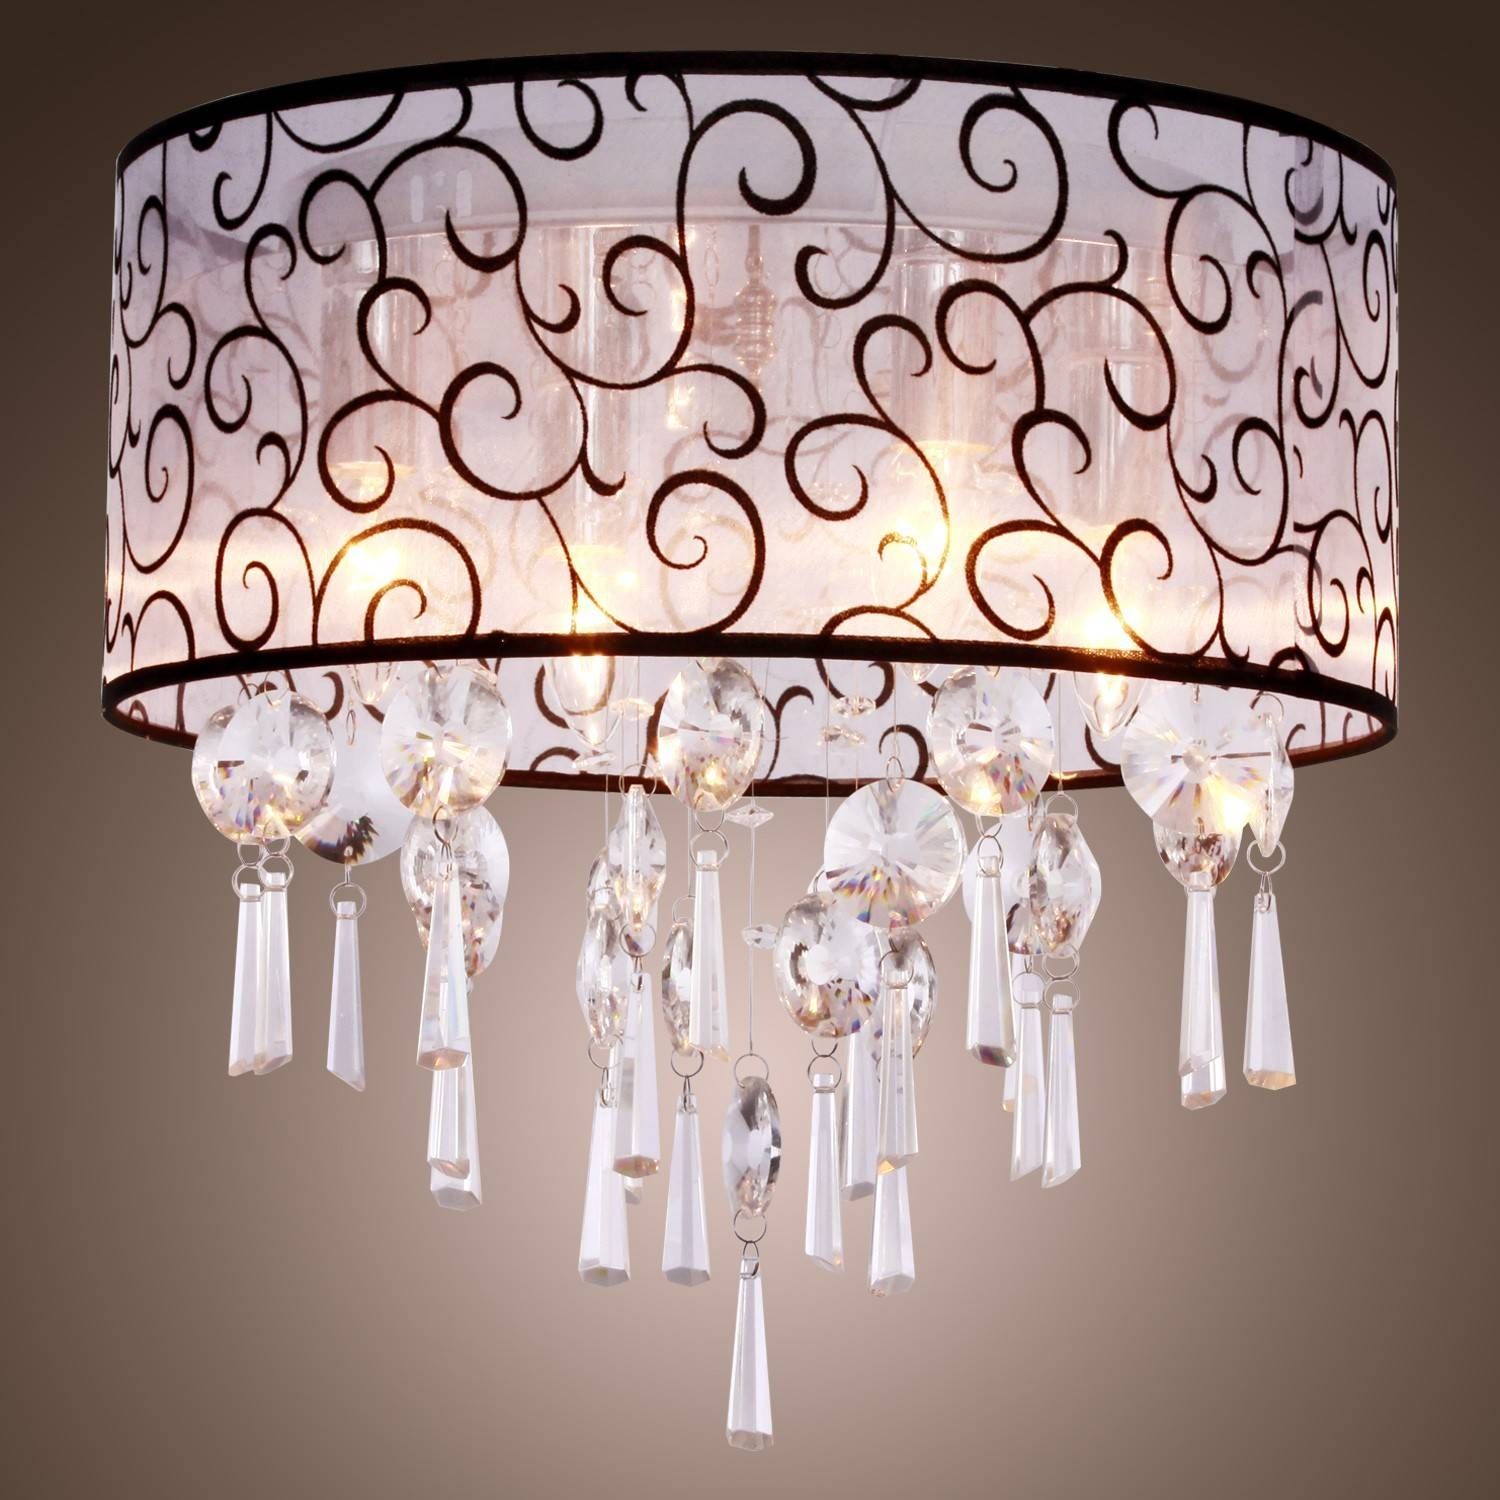 Stylish Chandelier With Matching Pendant Lights Chandelier with regard to Matching Pendant Lights And Chandeliers (Image 13 of 15)